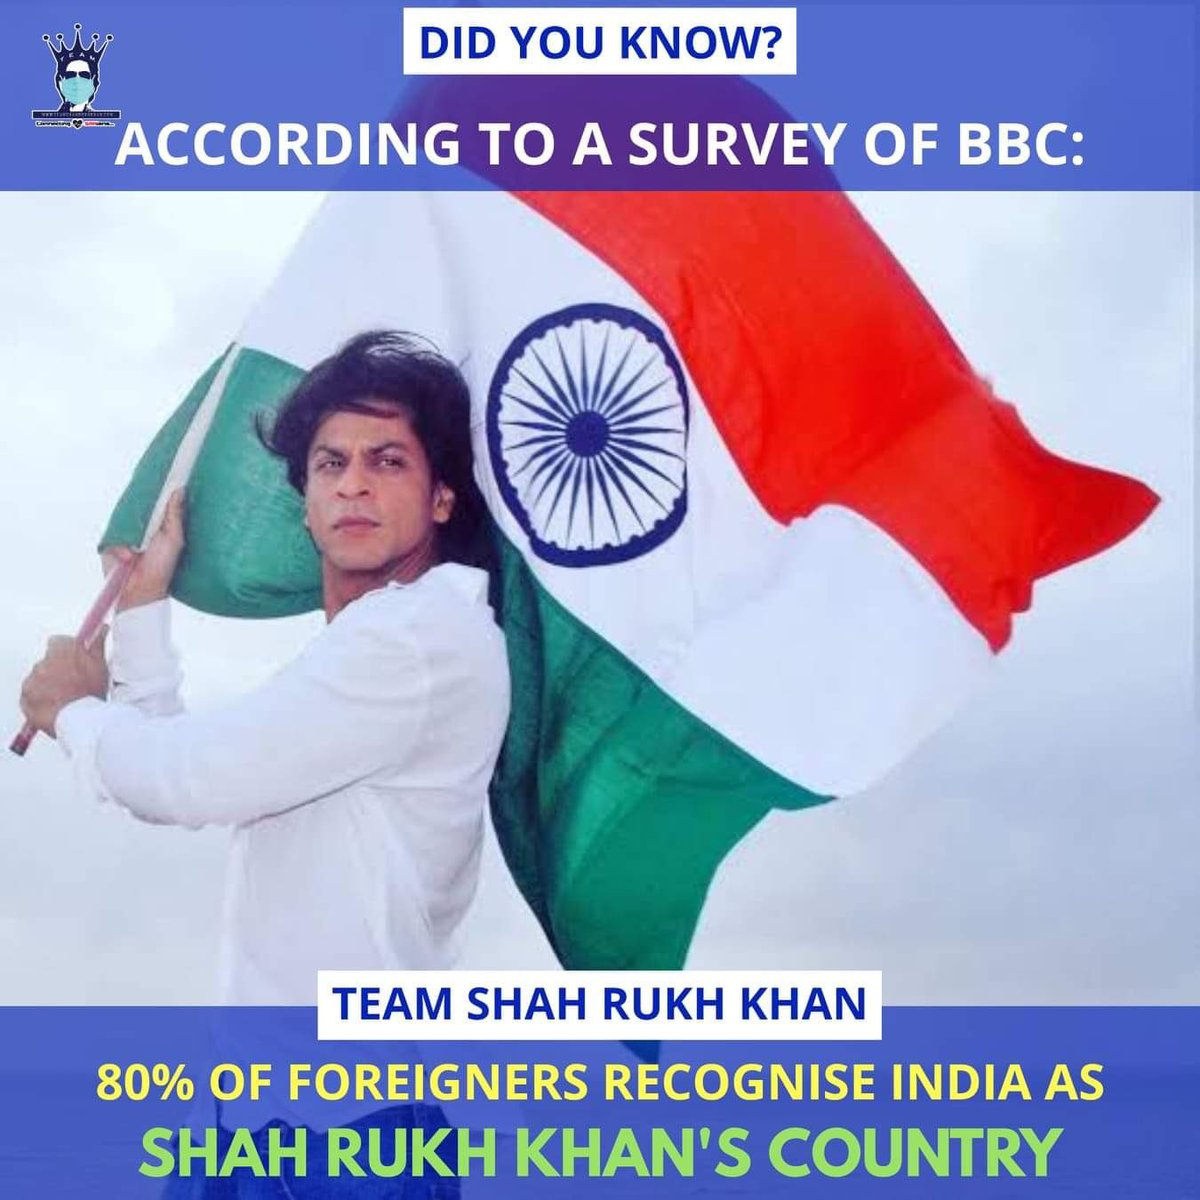 Did you know?  According to a survey conducted by BBC few years ago, it's reported that 80% foreigners recognise India as Shah Rukh Khan's country 😍  @iamsrk @RedChilliesEnt @teamsrkfc @teamsrknepal  #GlobalSuperstarSRK #ShahRukhKhan #TeamShahRukhKhan https://t.co/7DXIrL4jO1